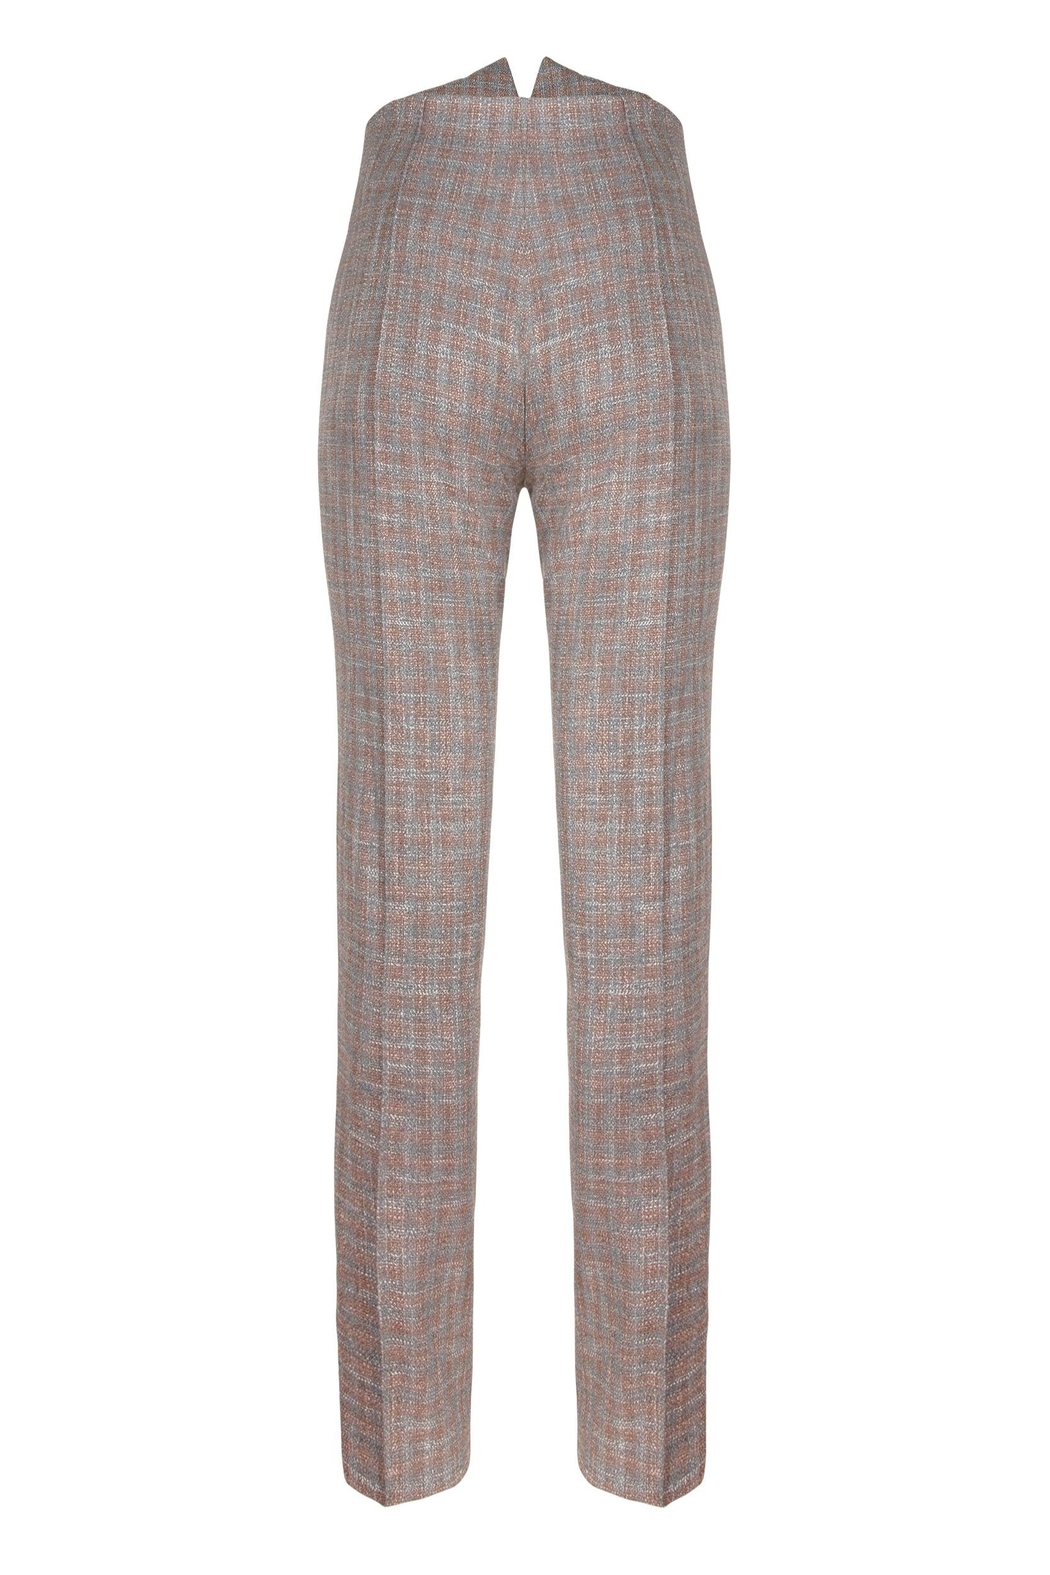 Yona New York Ari High Waisted Pant / Plaid - Side Cropped Image